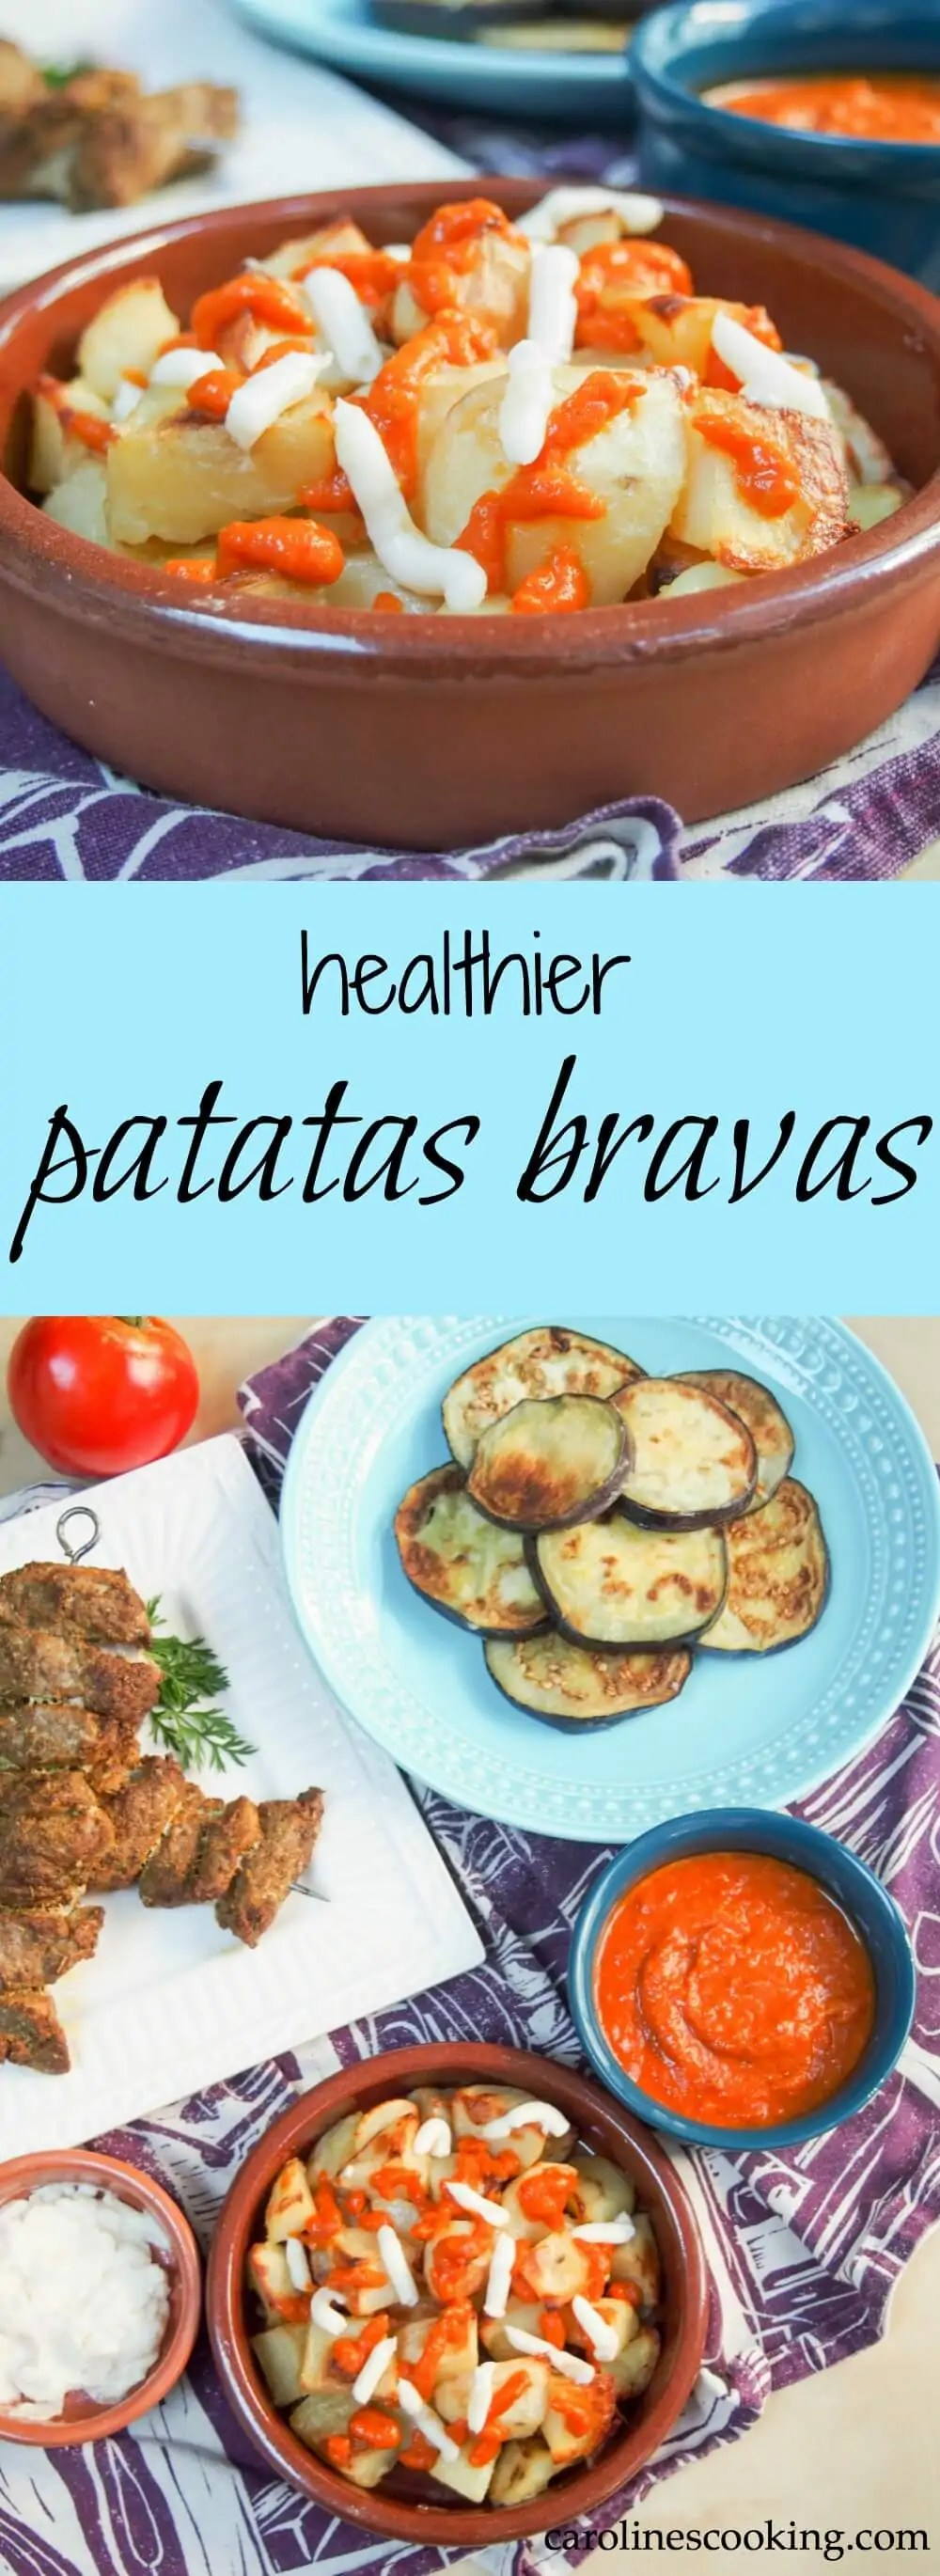 These healthier patatas bravas are roasted rather than fried, and with an easy spicy sauce, they make the classic Spanish potato tapas easy to enjoy.